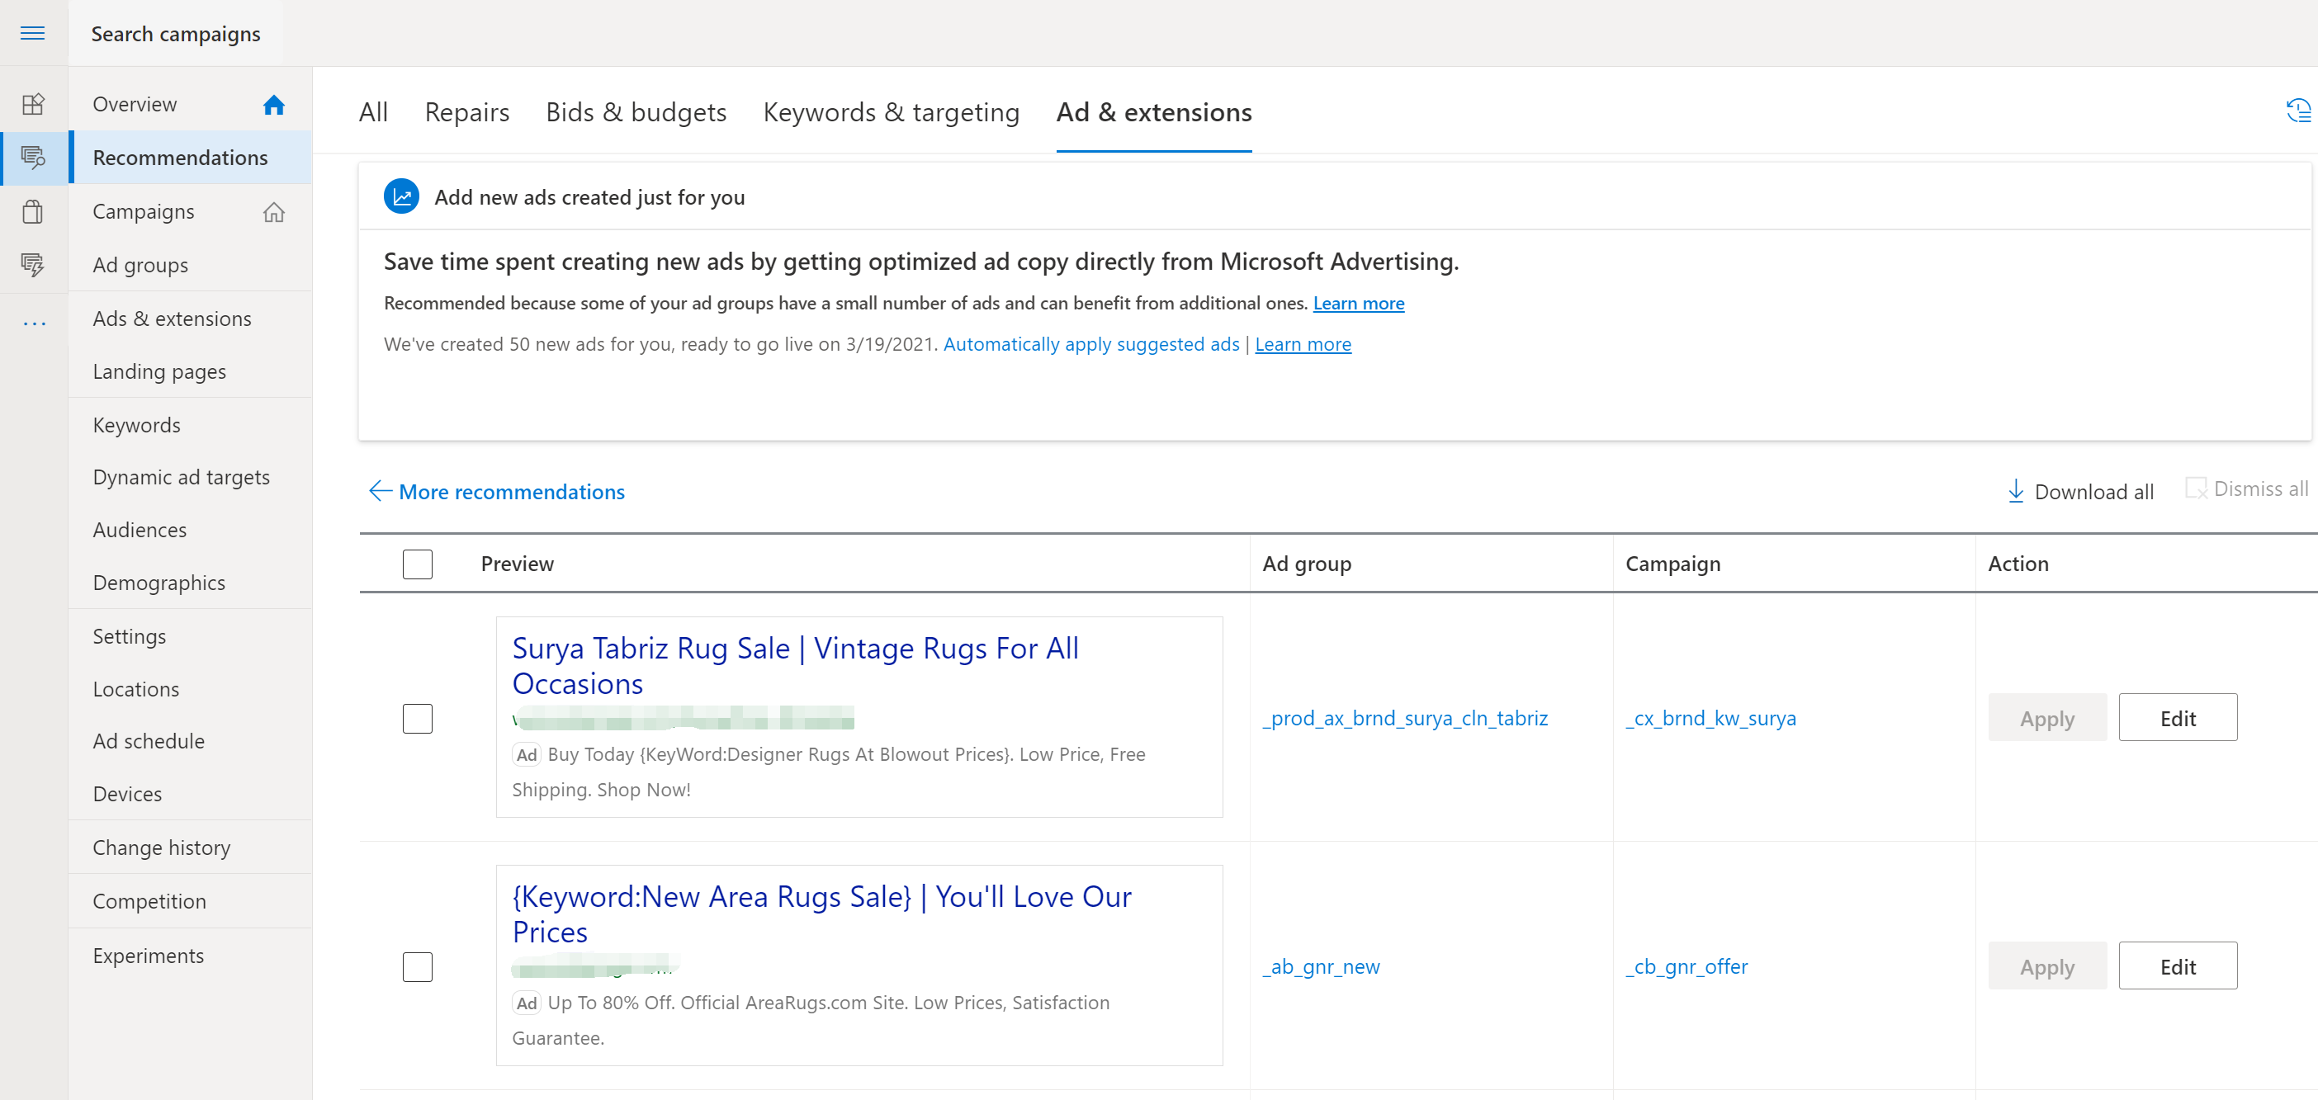 Microsoft to Auto Apply Ad Suggestions